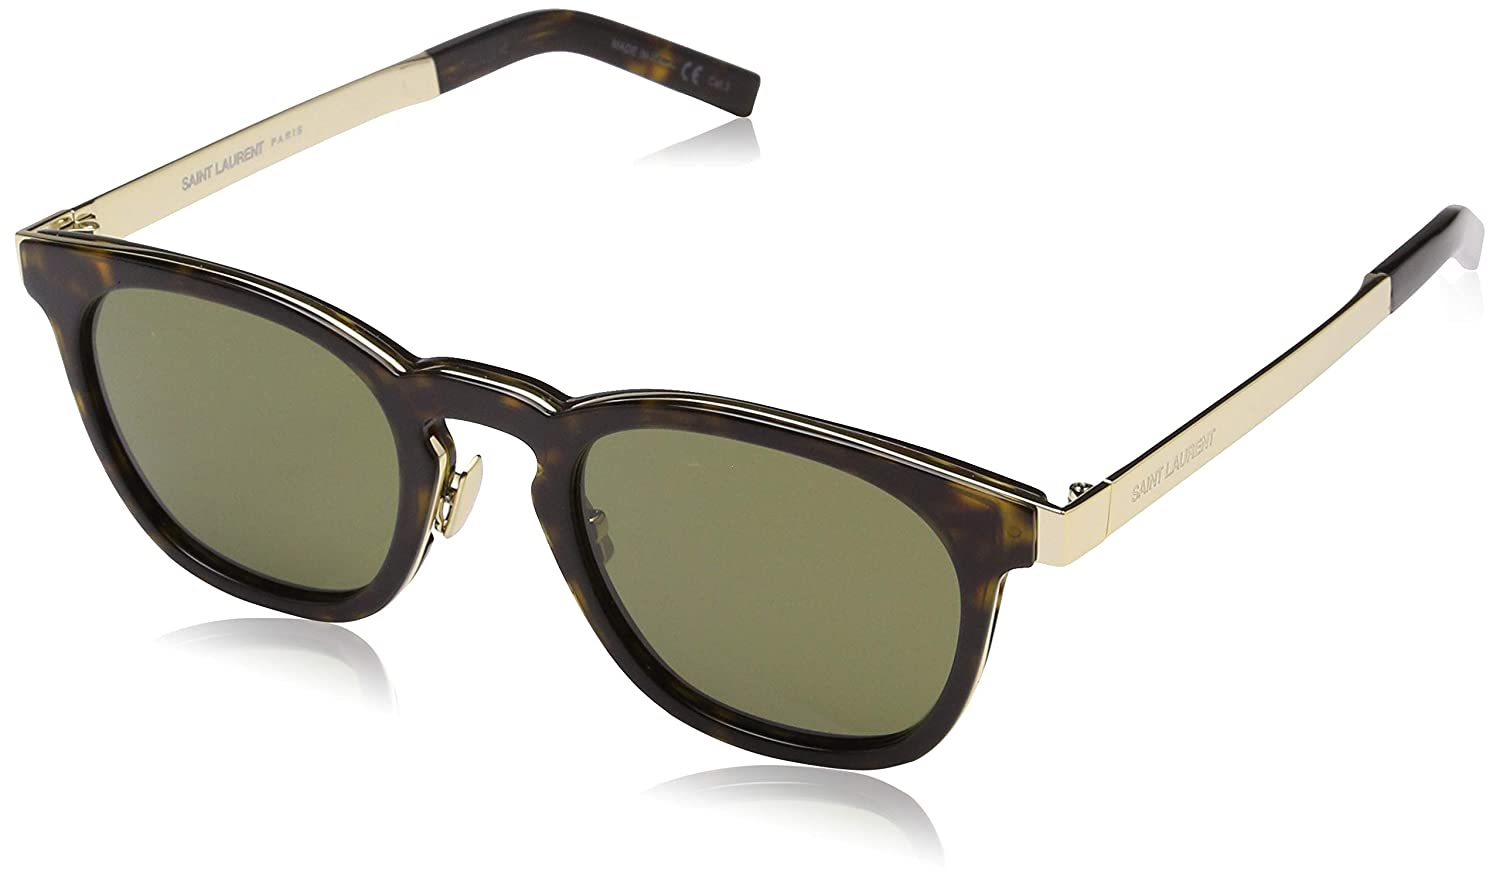 3d08cf7d13f Saint Laurent Unisex's SL 28 COMBI 004 Sunglasses, 4/Green, 49:  Amazon.co.uk: Clothing